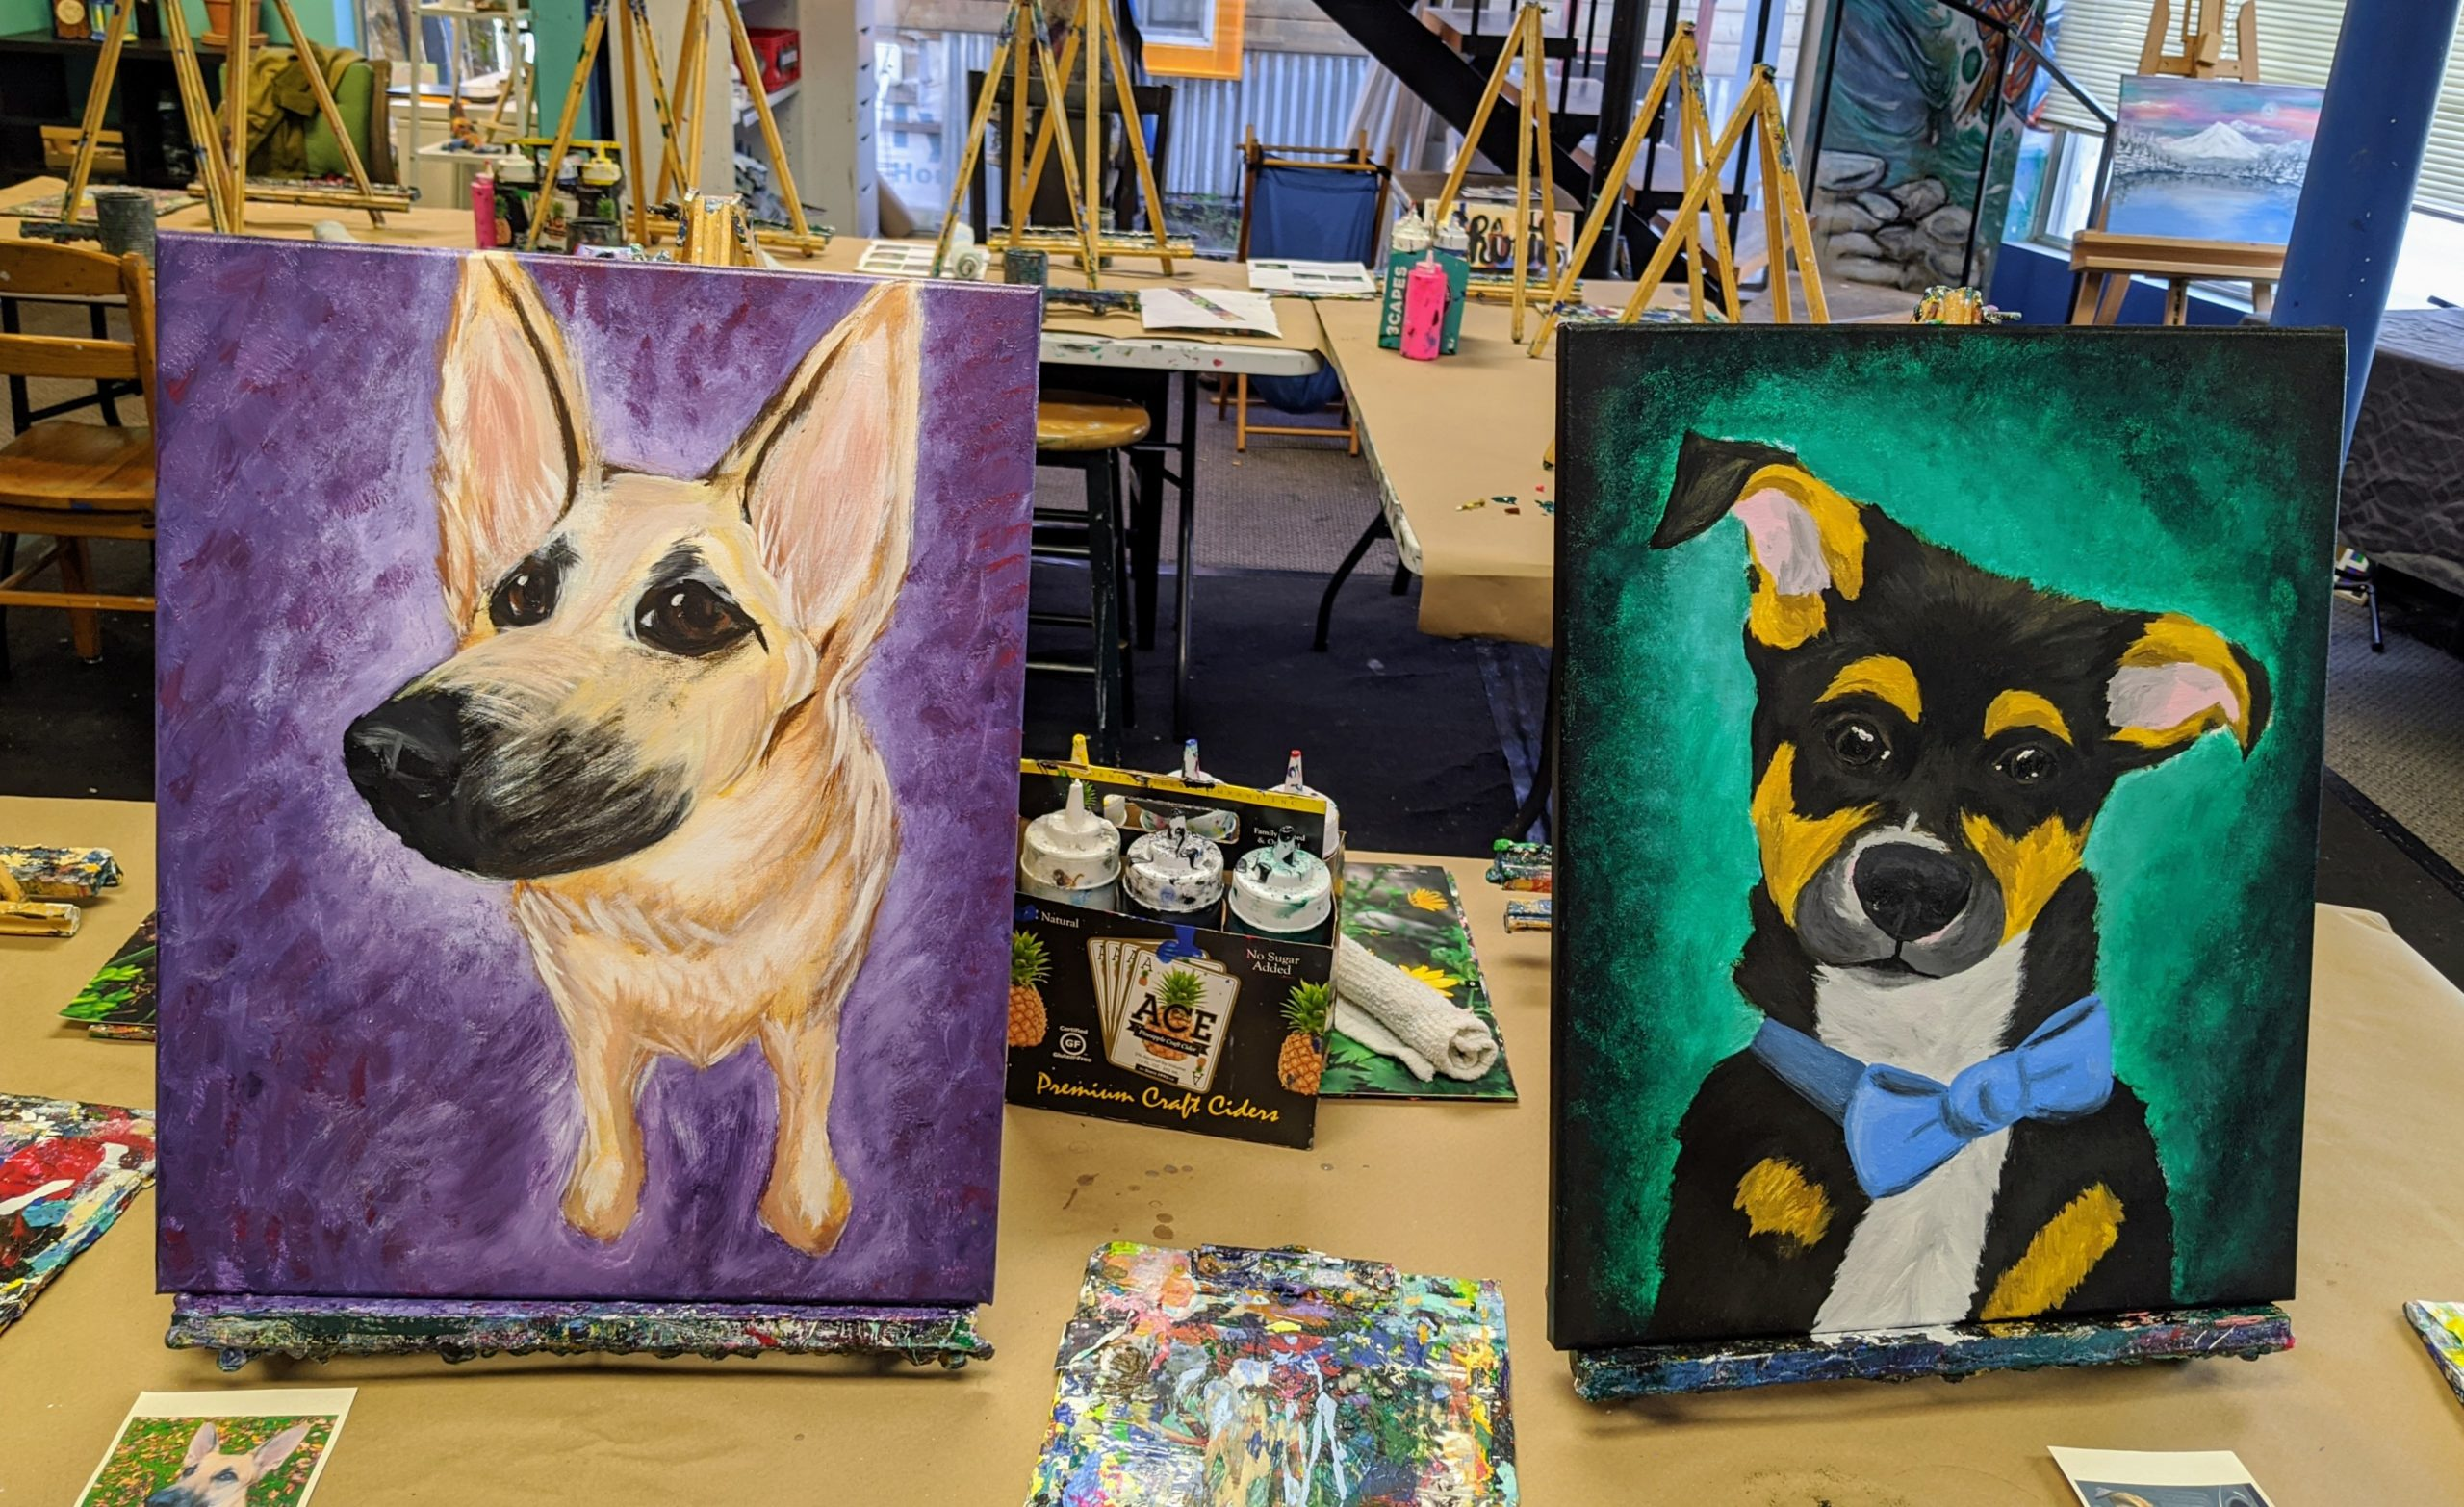 Paint-Your-Pet @ The Loaded Brush Paint & Sip | www.loadedbrush.com